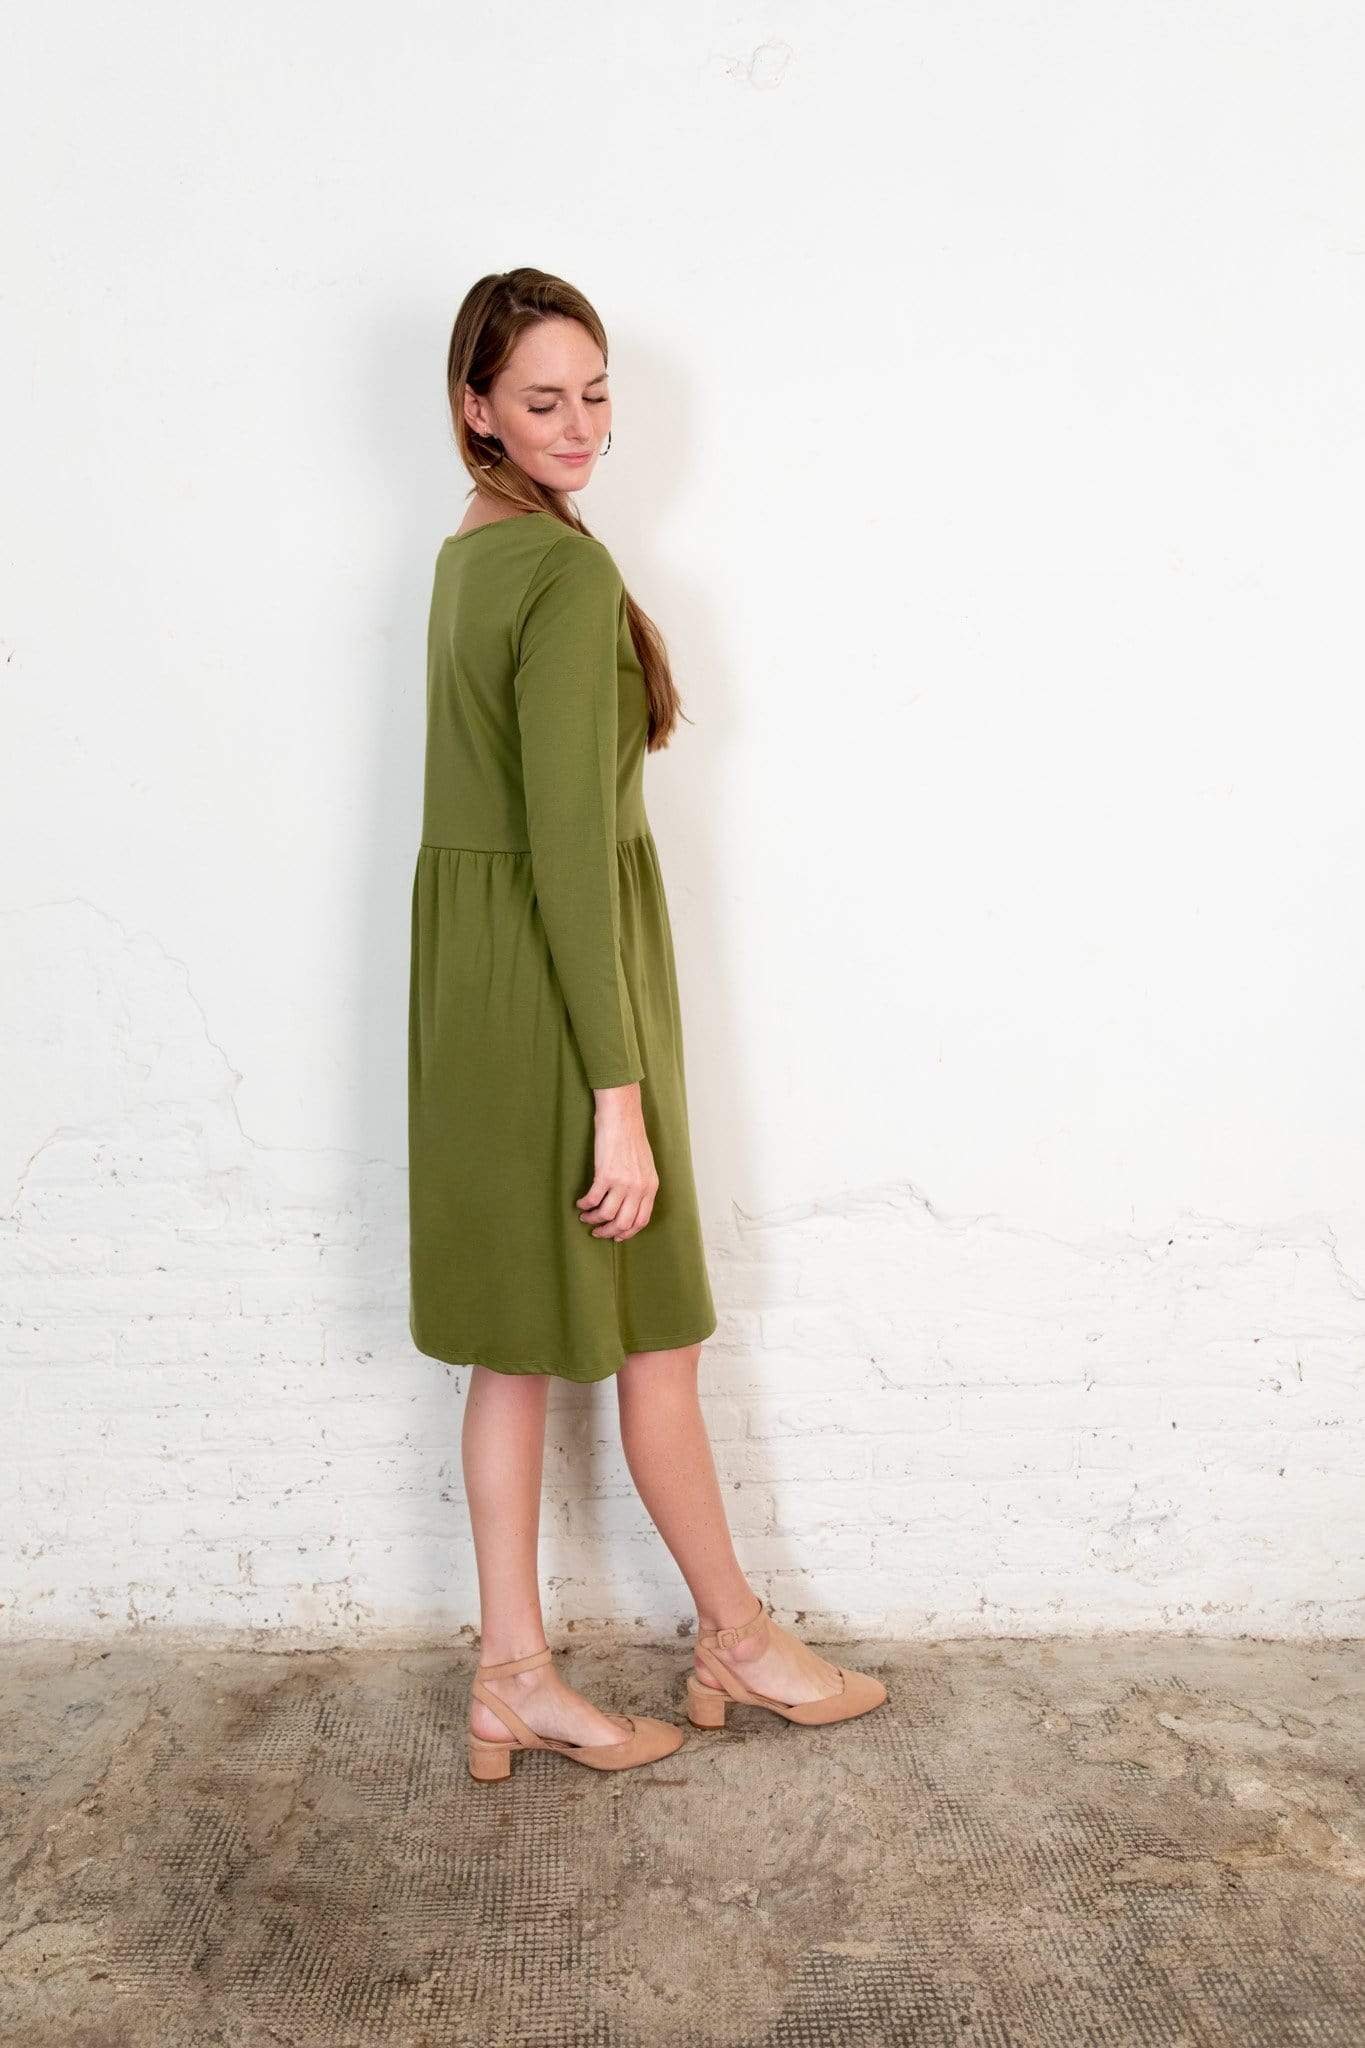 Nordic Leaves dress Annor Dress in Organic Cotton. sustainable fashion ethical fashion